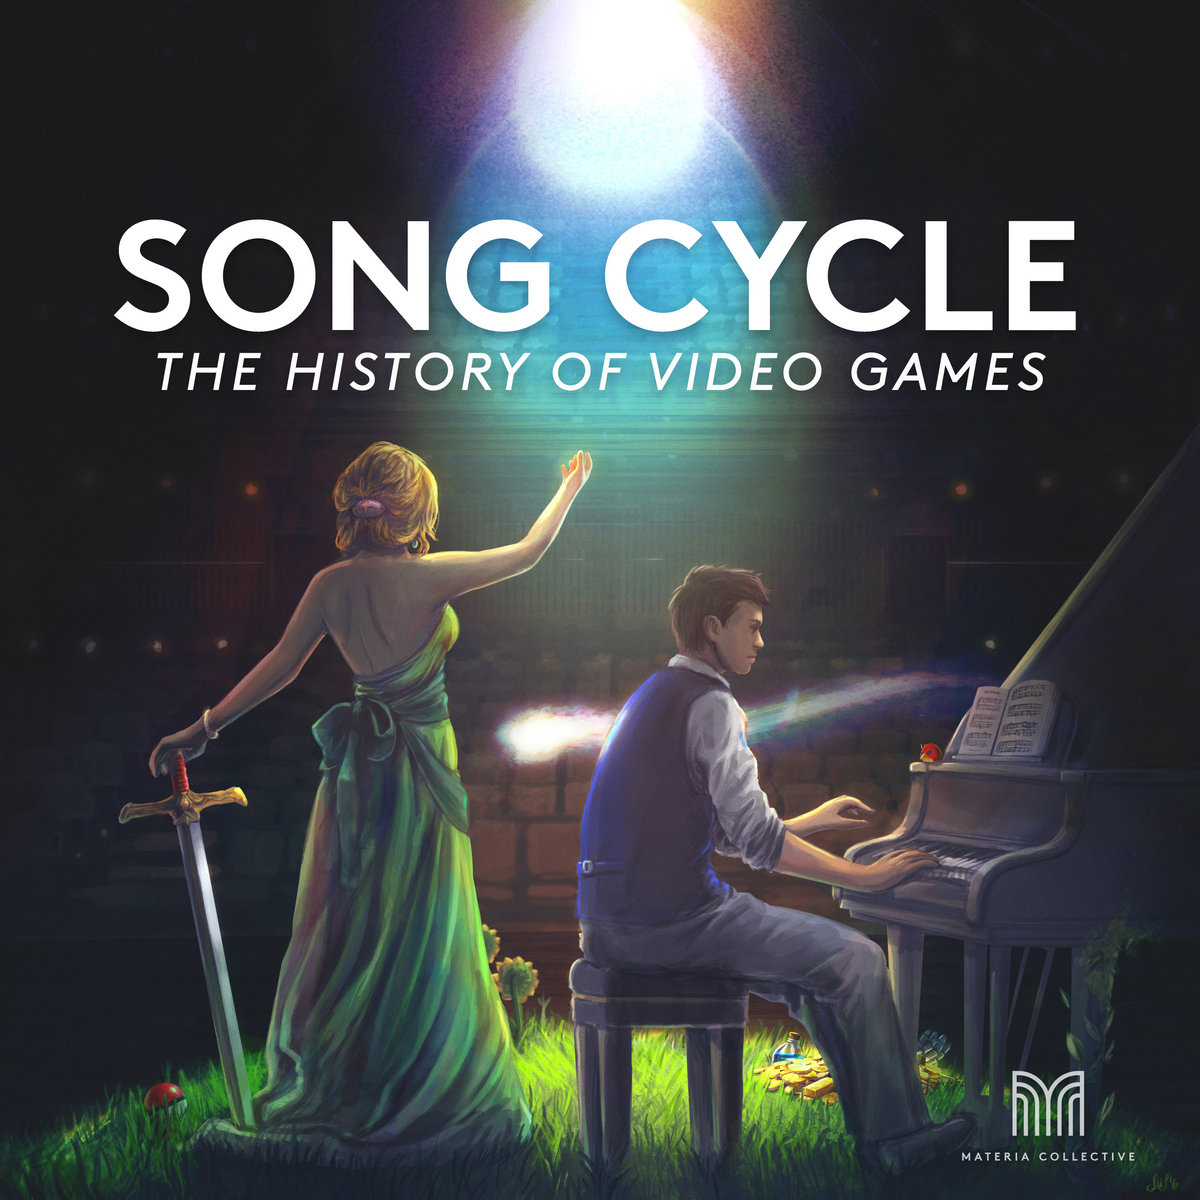 Song Cycle: The History of Video Games | Materia Collective